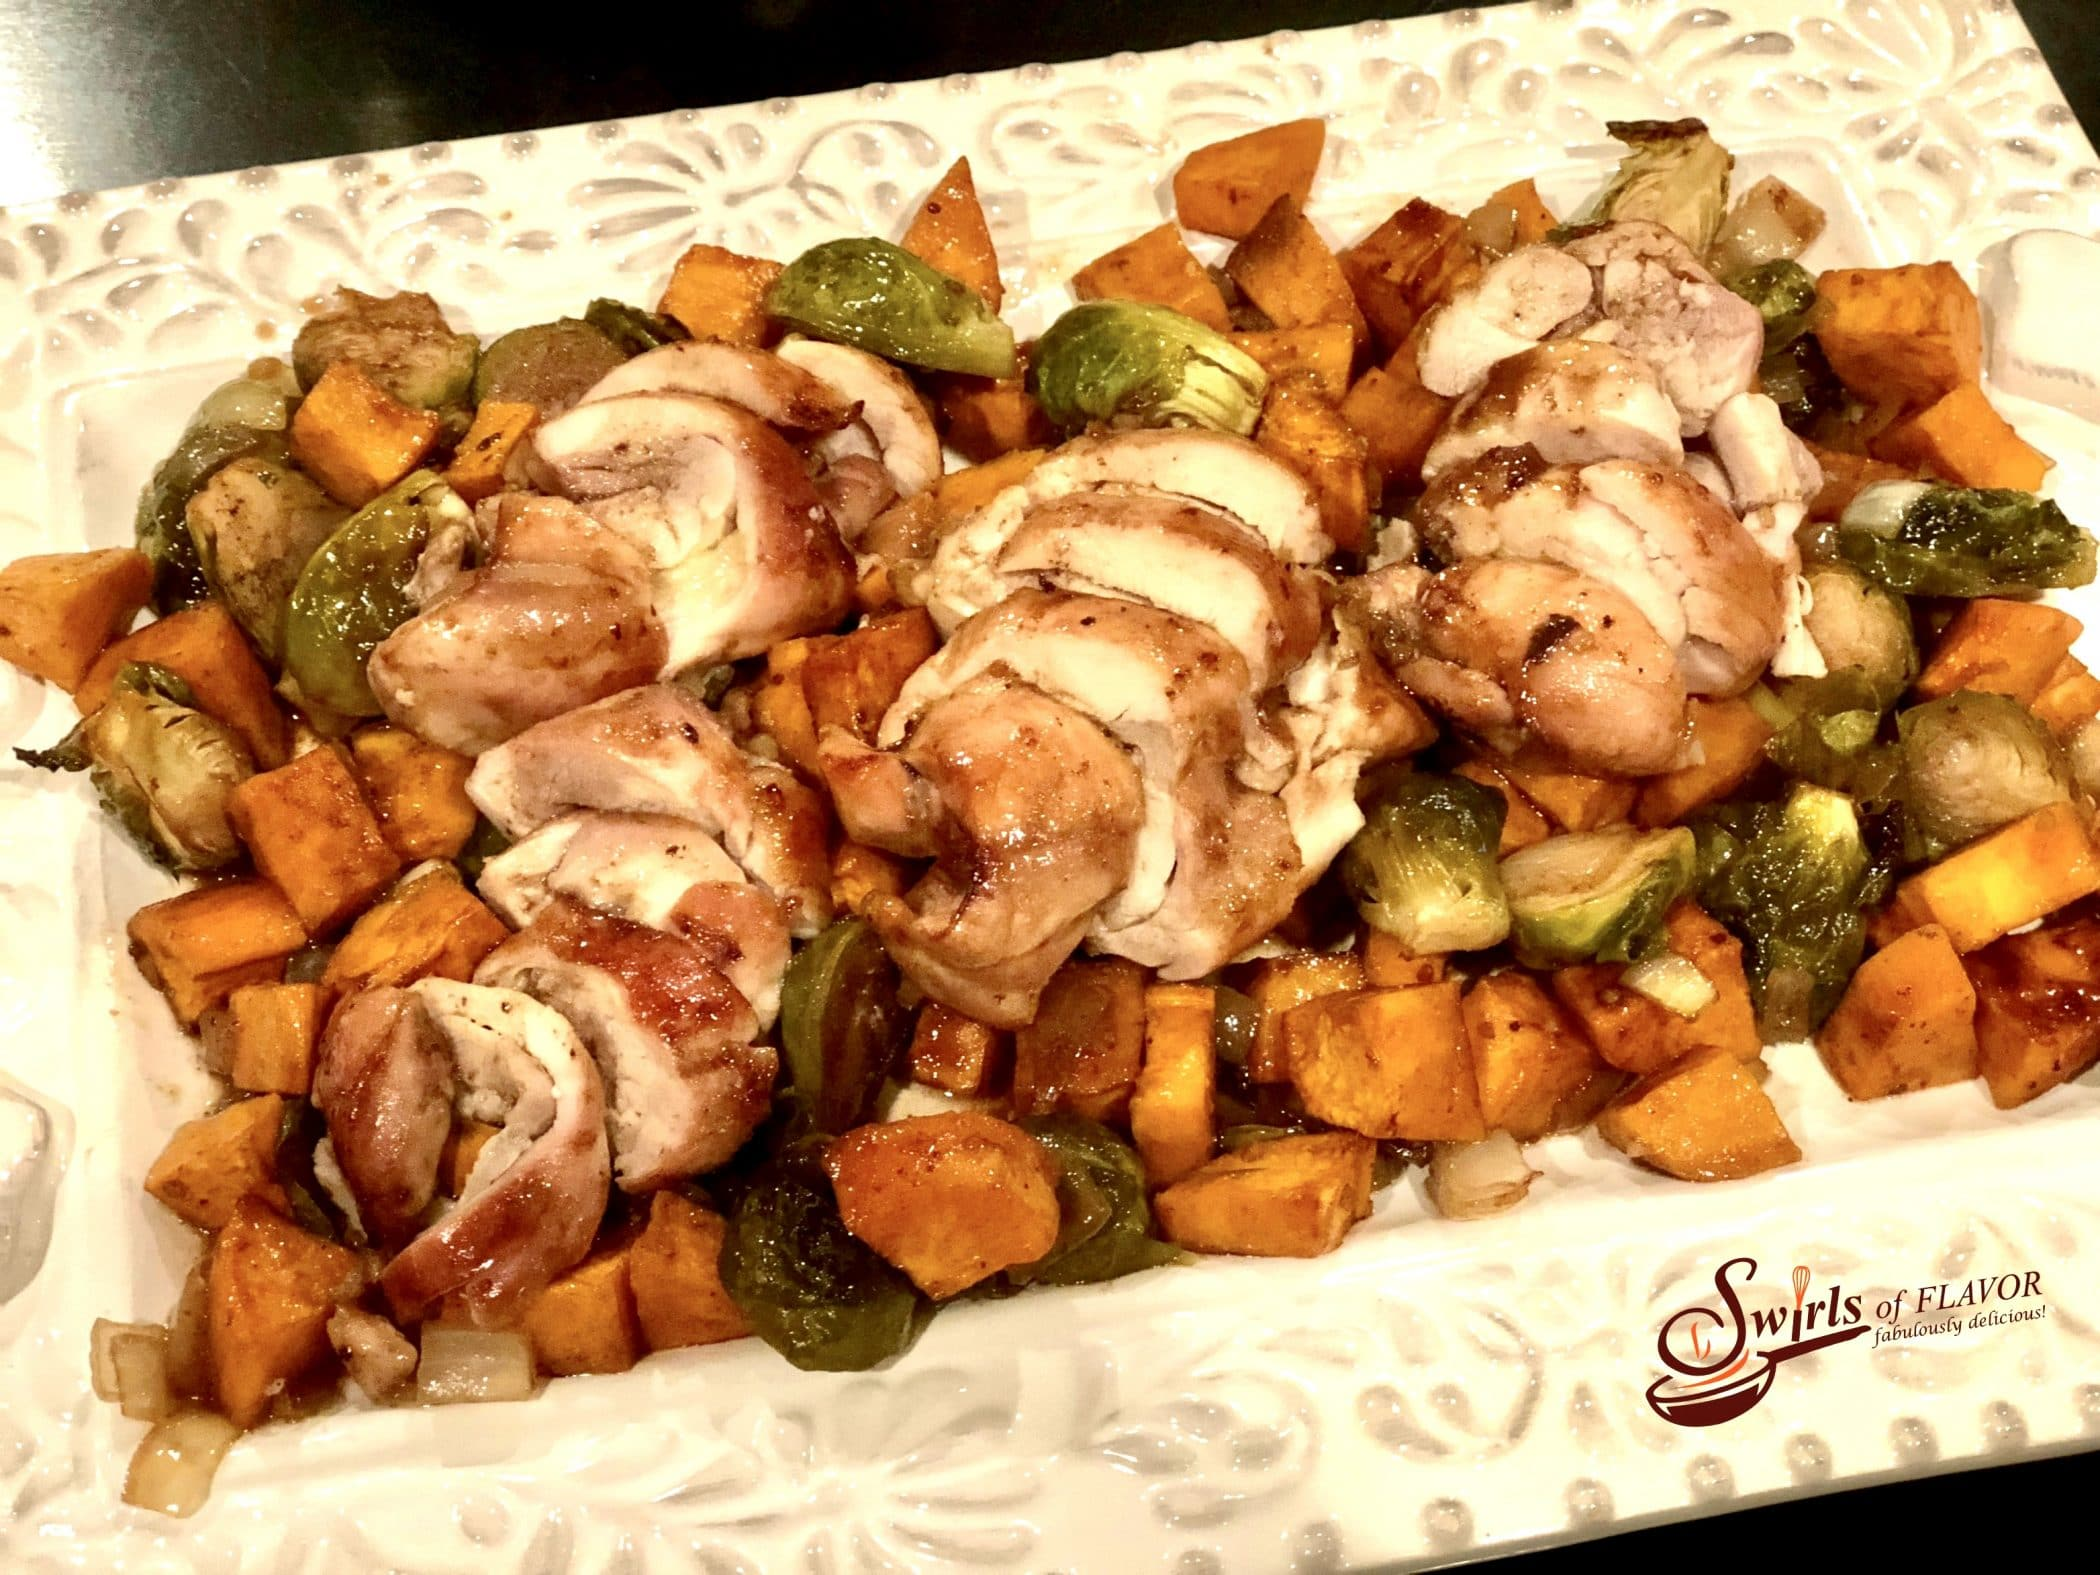 chhicken and sweet potatoes with brussels sprouts on white platter